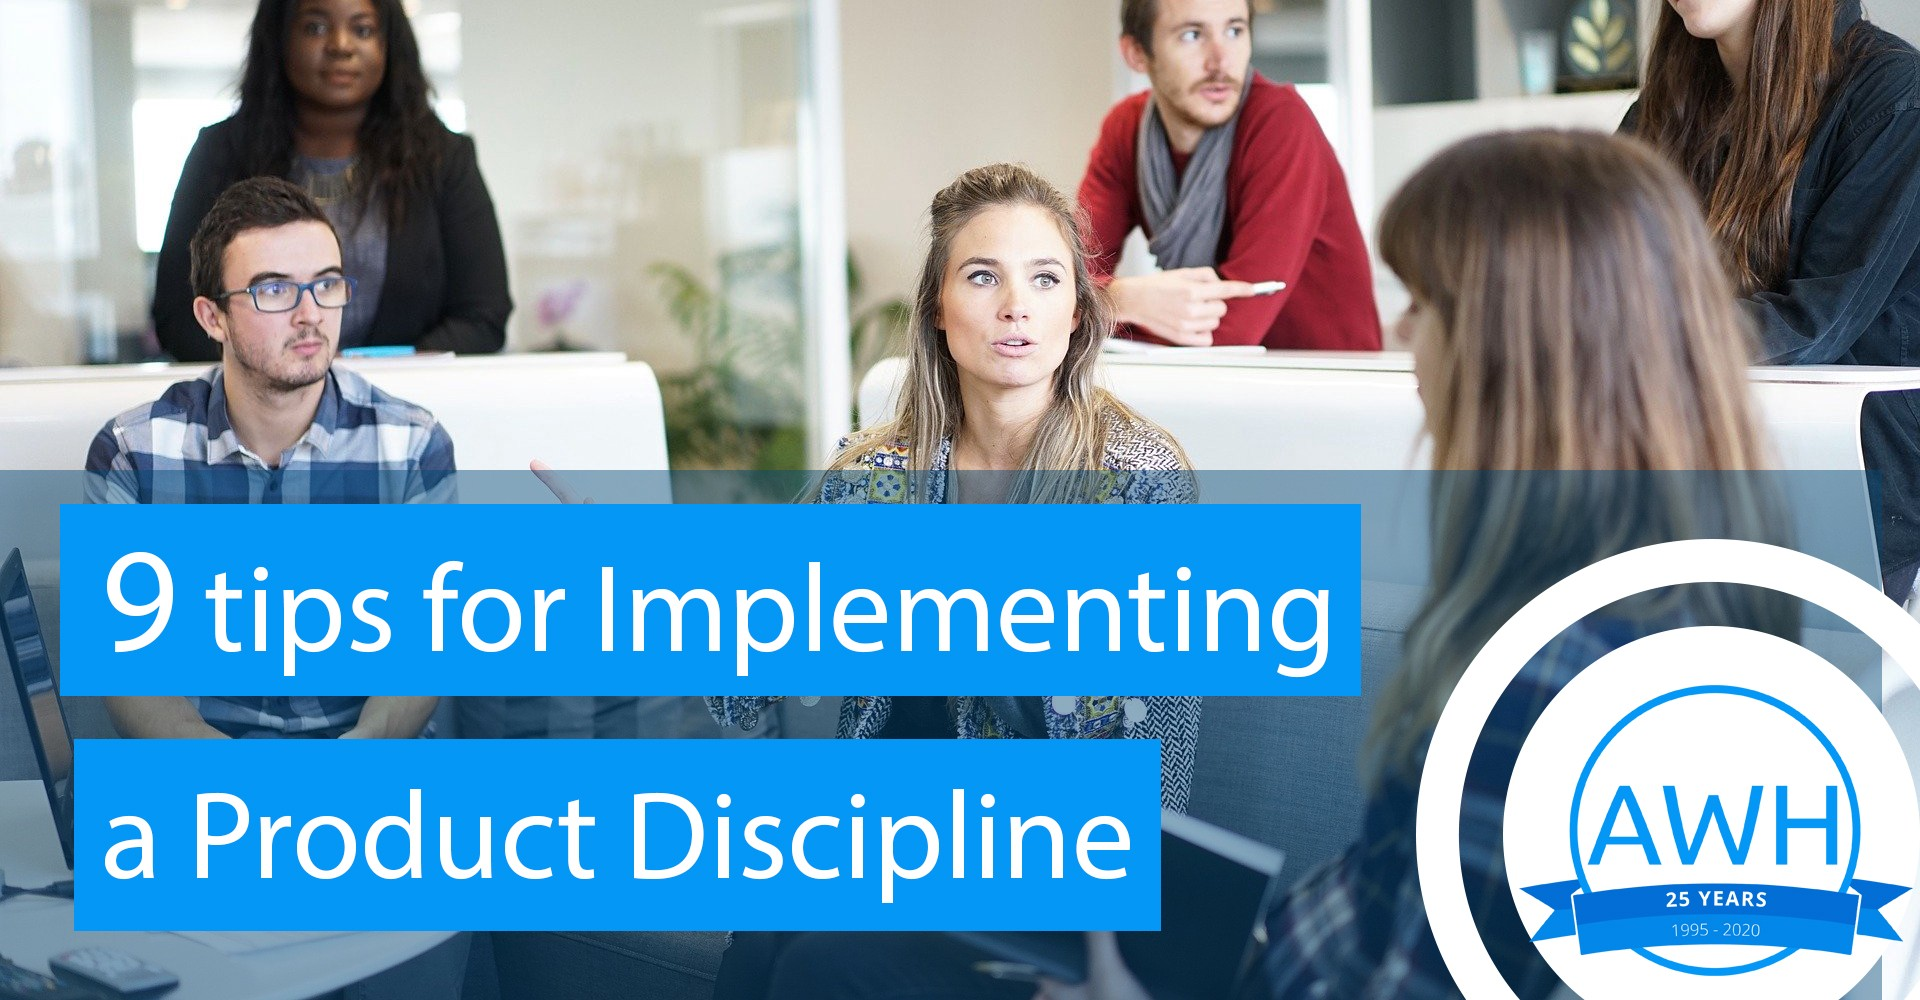 Tips for implementing a product discipline or adding product management to your organization.